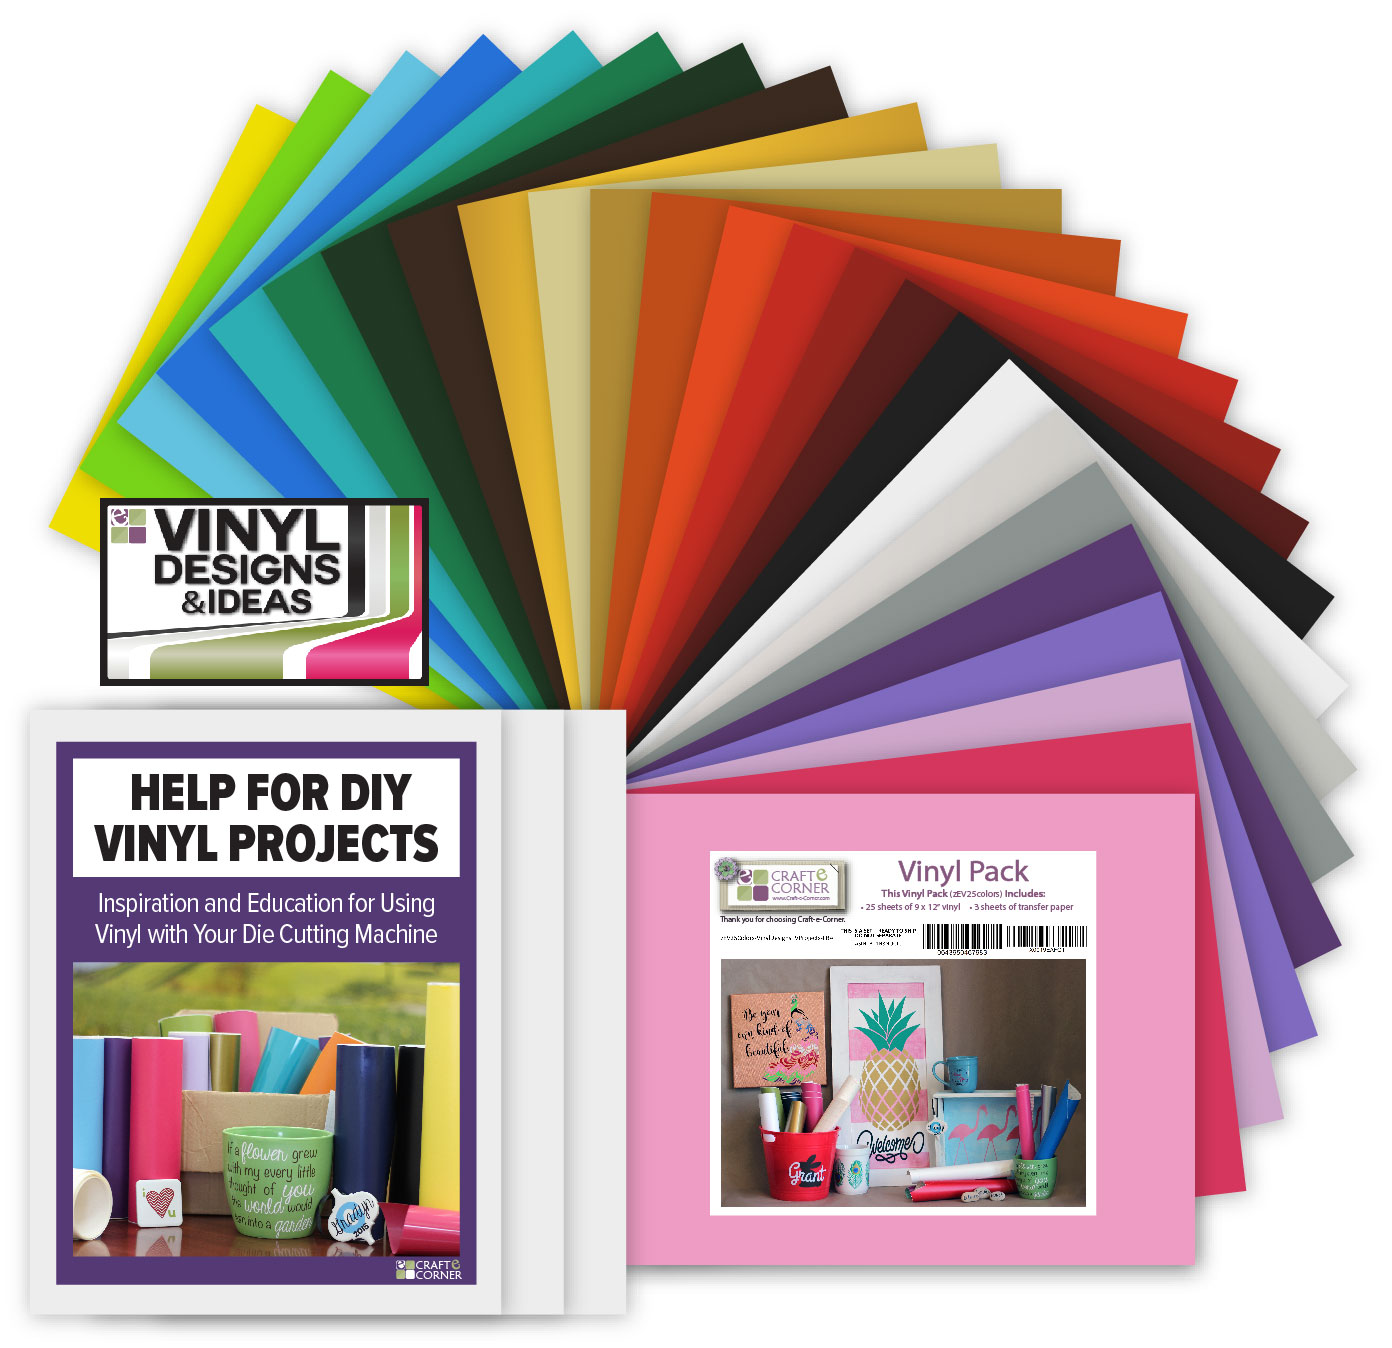 Adhesive Vinyl 25 Color Sheets, Transfer Paper & Exclusive Designs and Projects Bundle